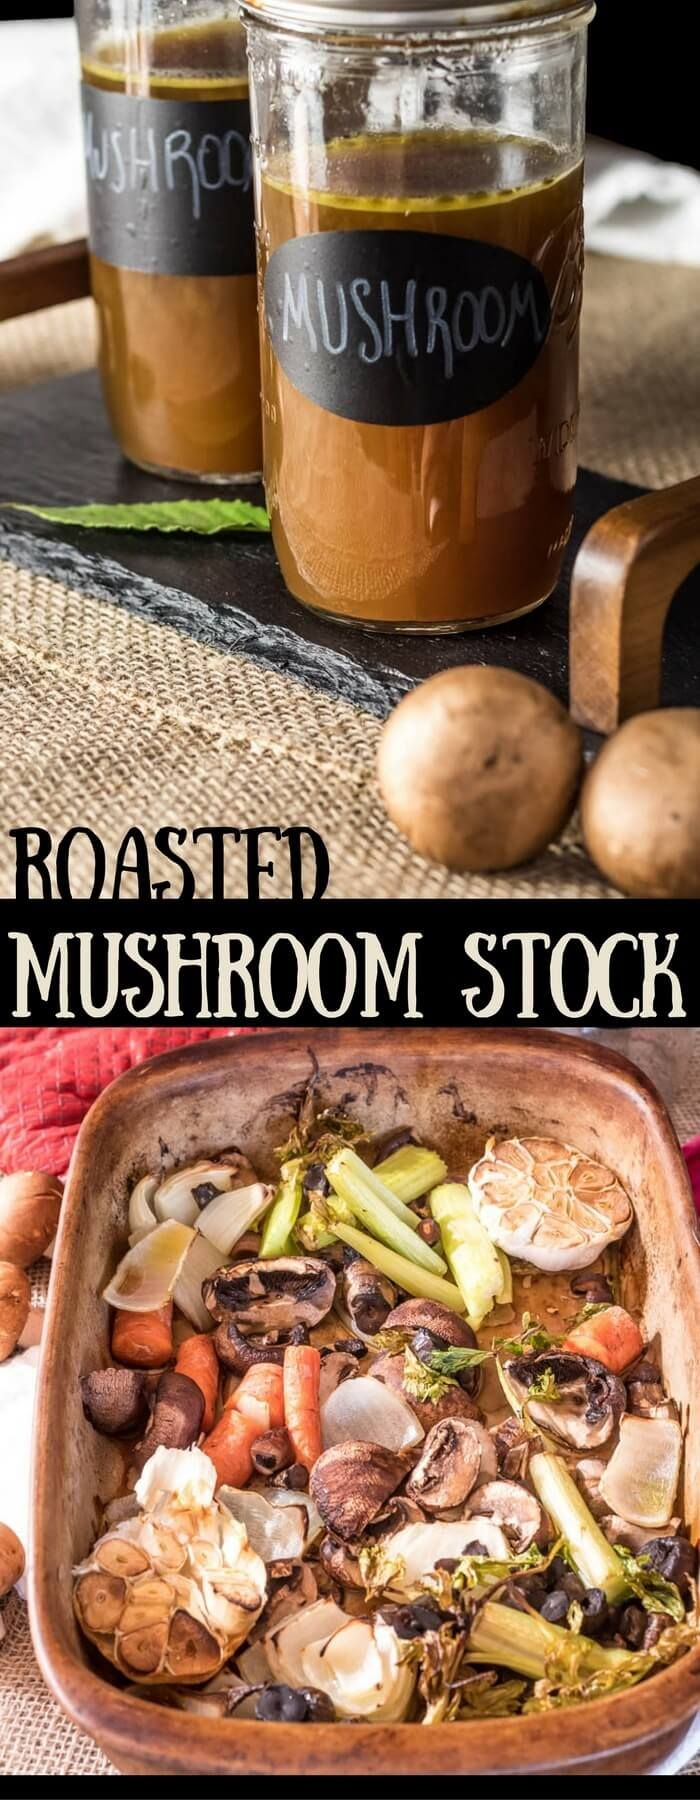 Roasted Mushroom Stock - Full-bodied and flavorful Roasted Mushroom Stock tastes fabulous in your soups, stews, and risottos, and is a great way to use kitchen scraps!